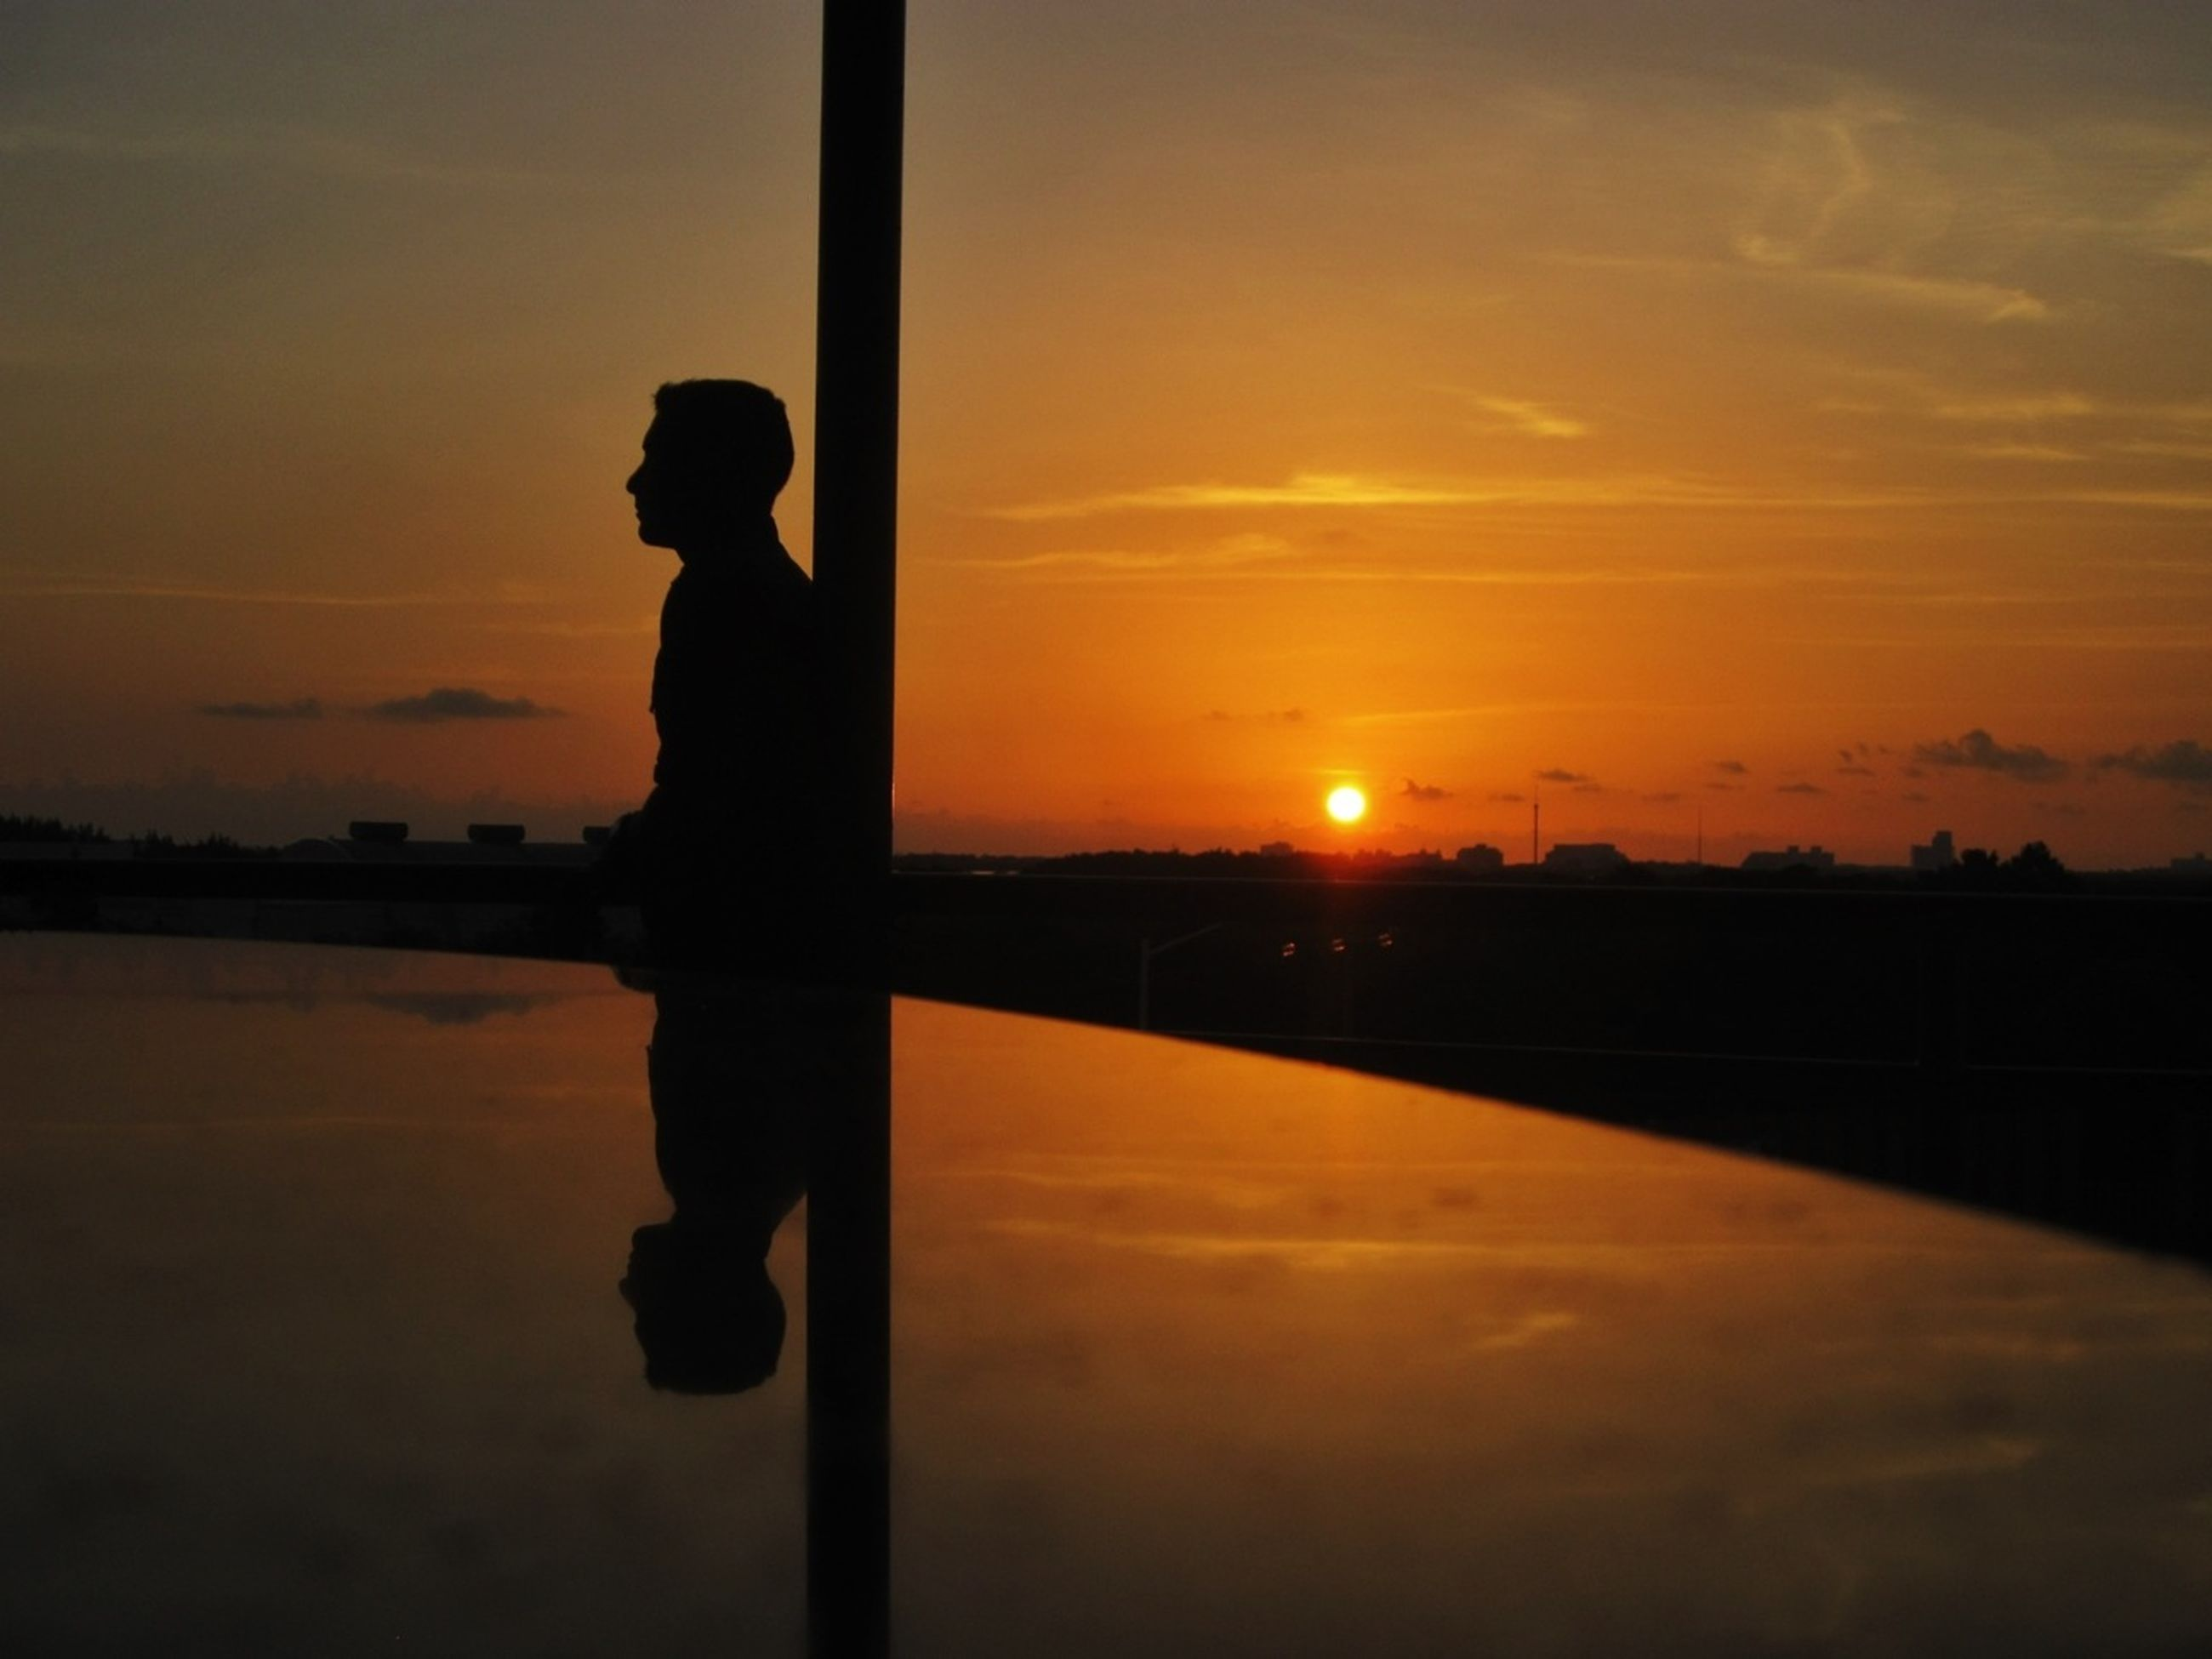 sunset, silhouette, orange color, sun, sky, standing, lifestyles, water, scenics, leisure activity, beauty in nature, tranquility, cloud - sky, nature, idyllic, tranquil scene, reflection, full length